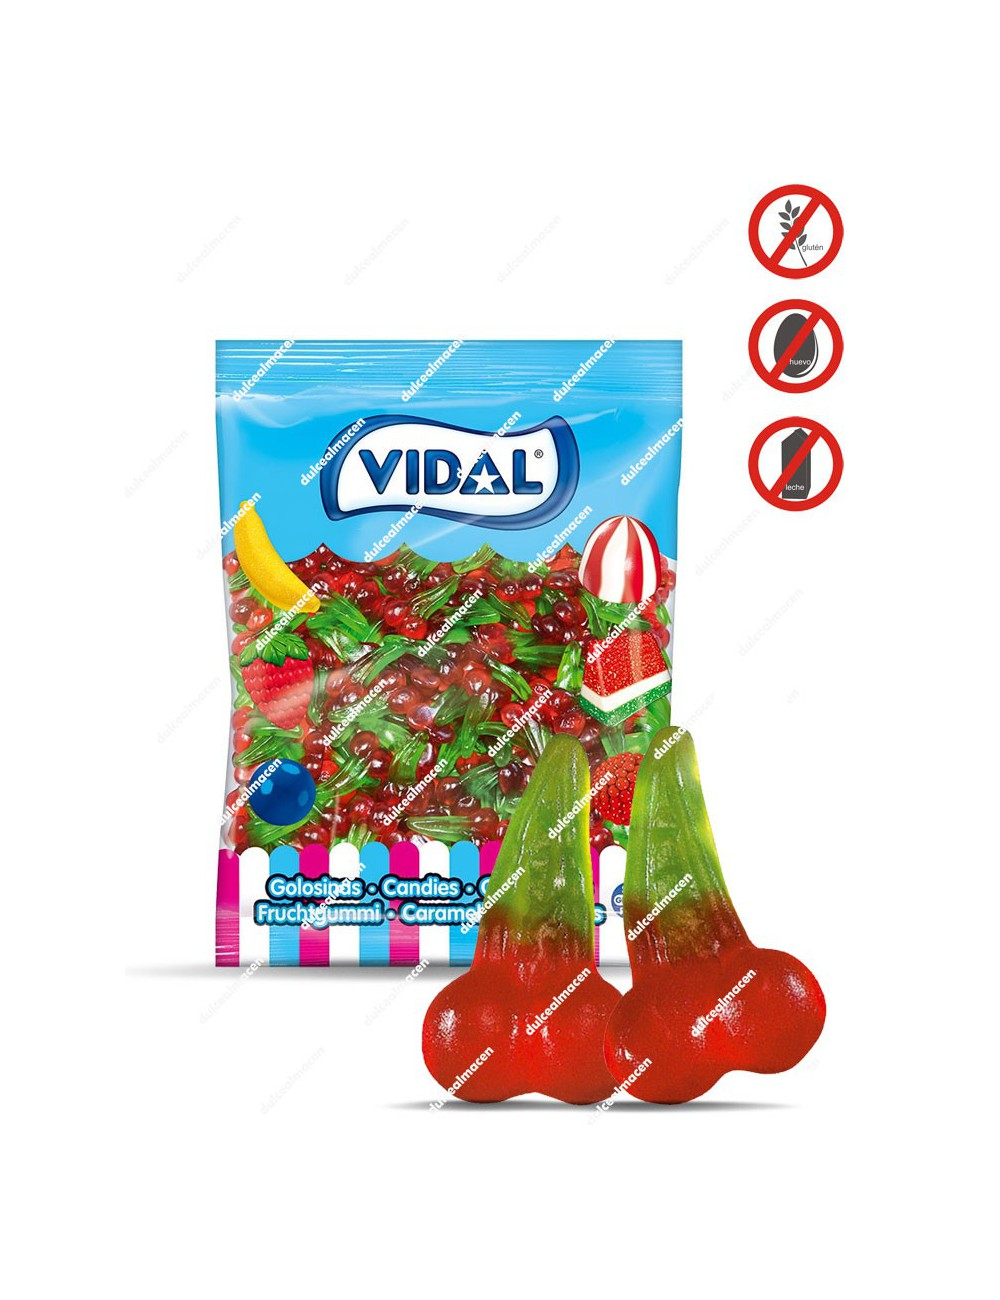 Vidal Cerezas Brillo